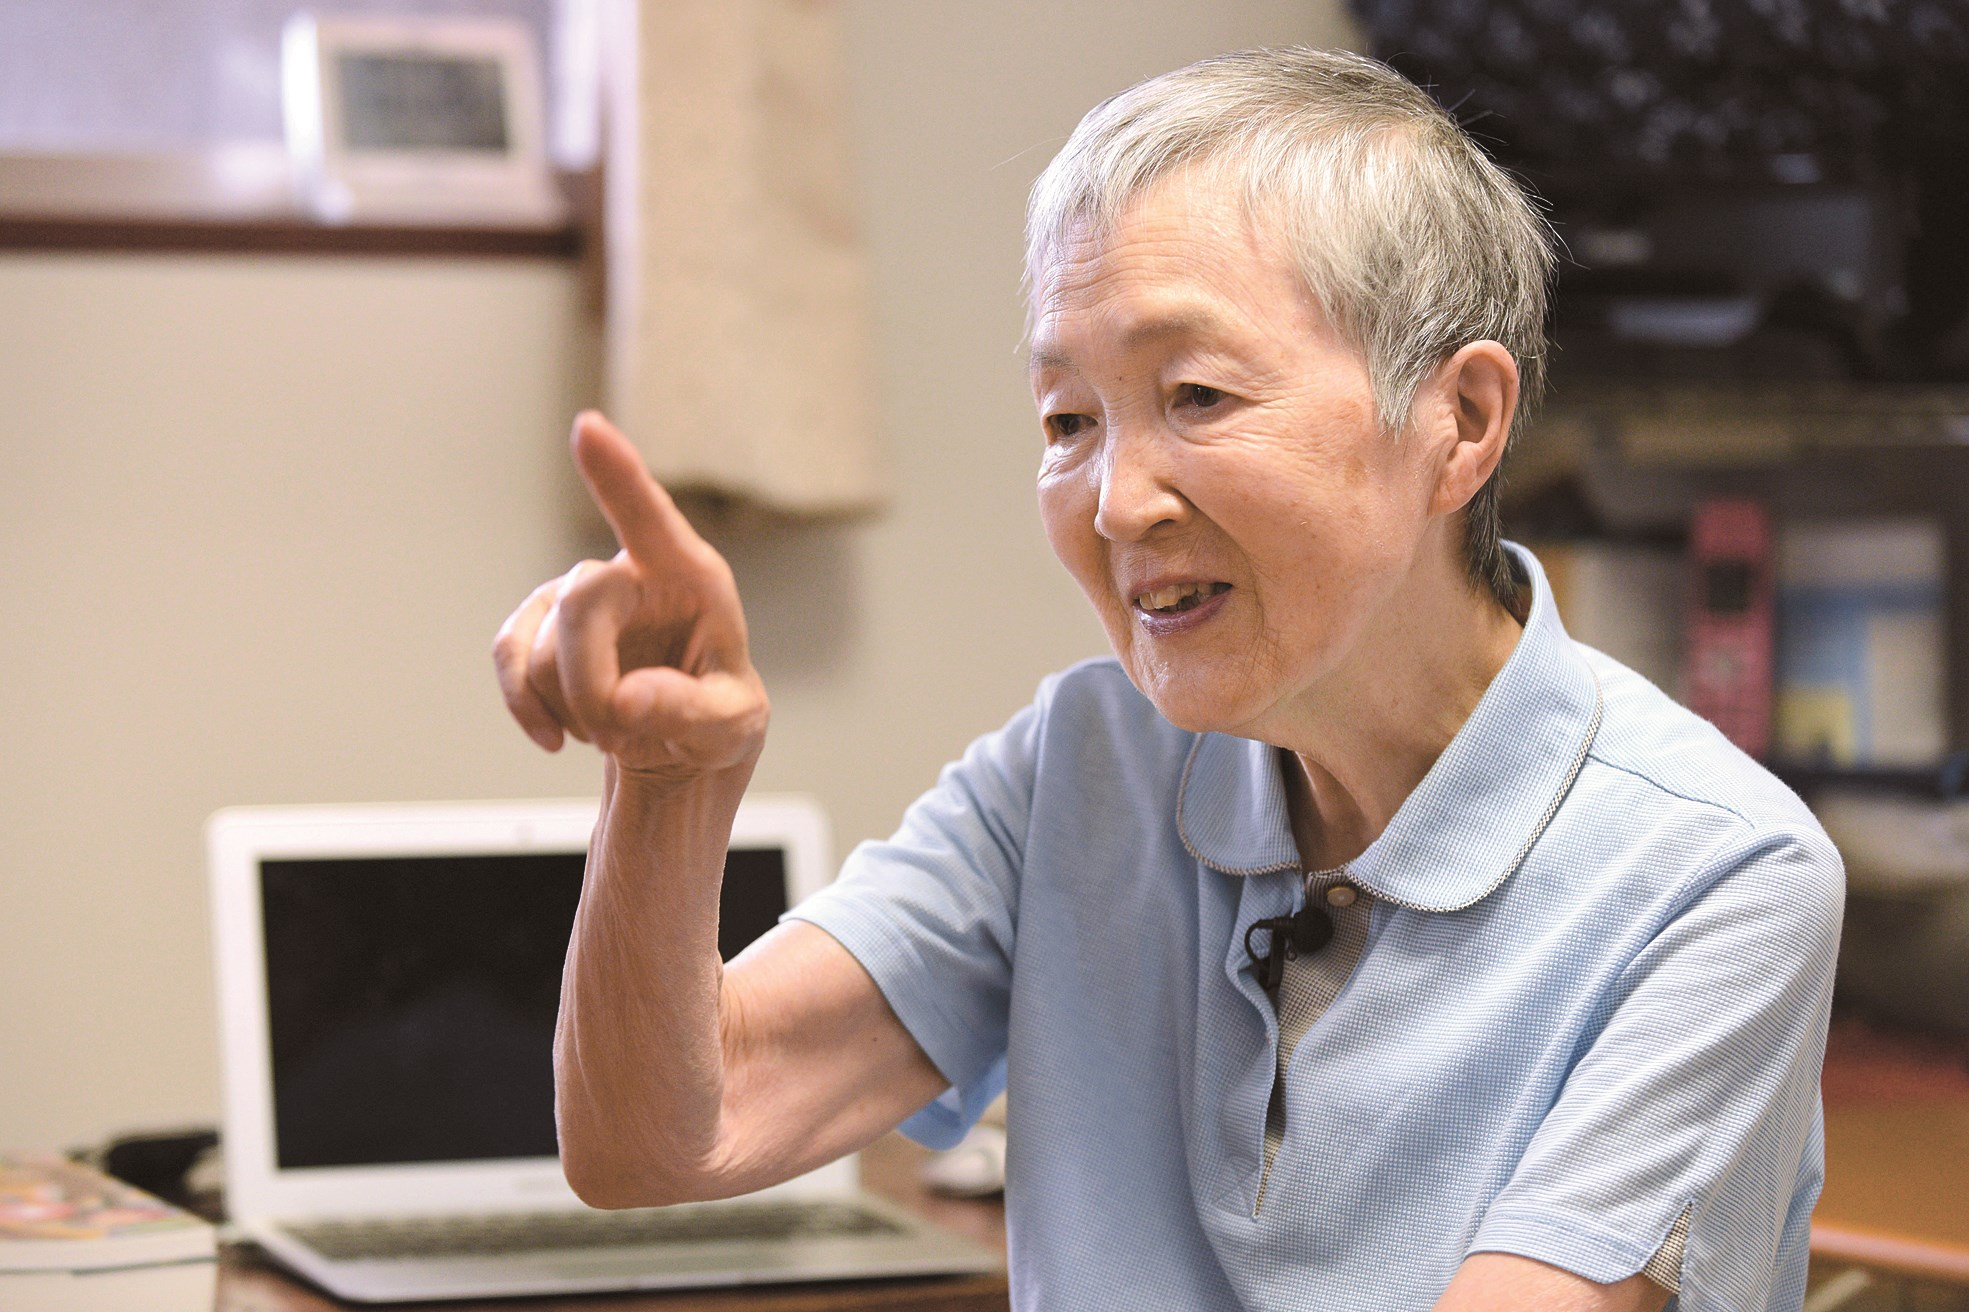 The picture shows 82-year-old Masako Wakamiya talking about the logistics of her pioneering new app which makes android phones more accessible for the elderly. The app has been downloaded 42,000 times since its launch. — AFP